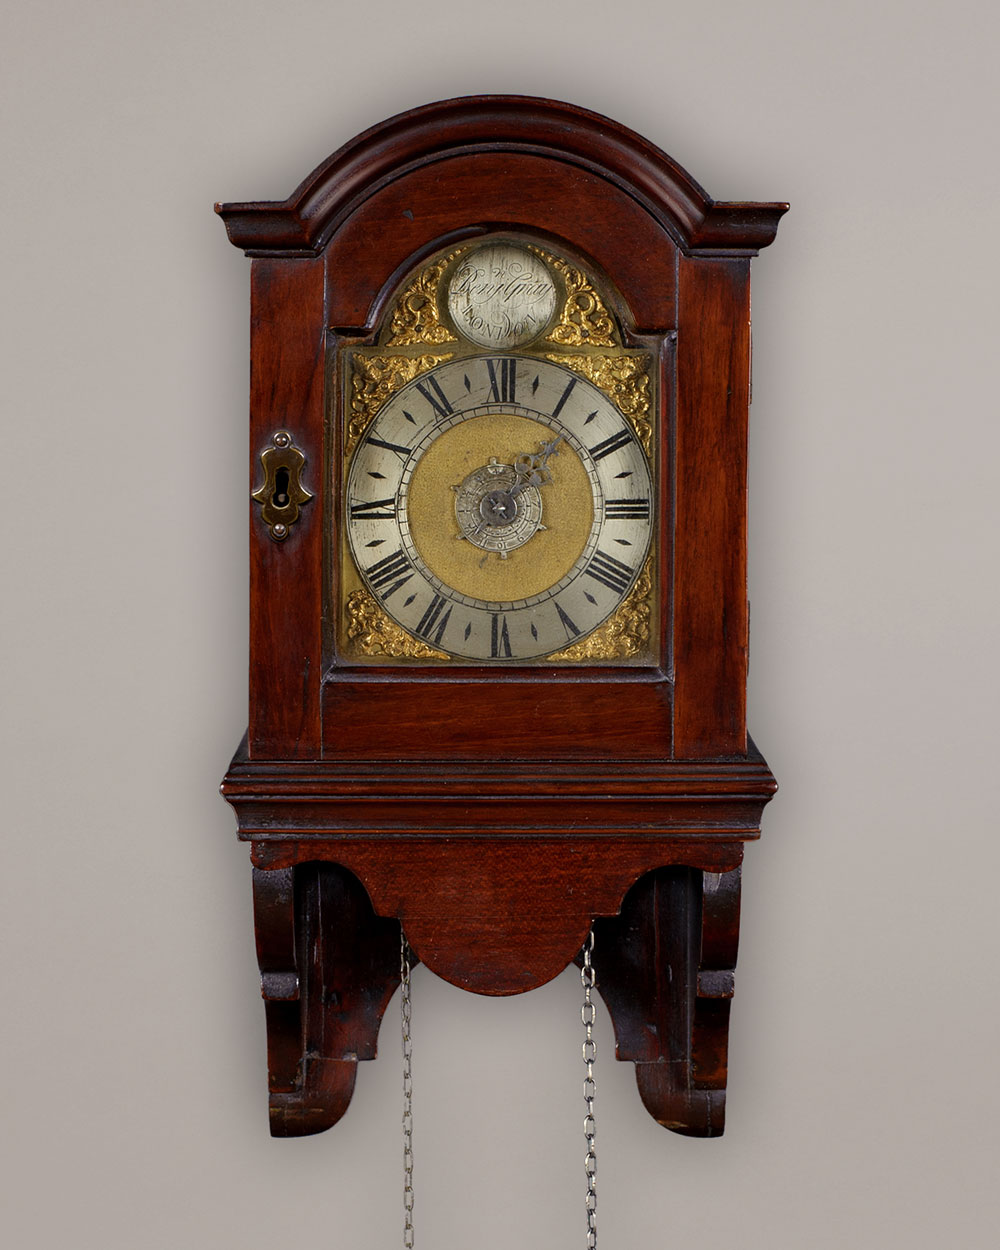 Benjamin Gray, A rare George II period arched dial timepiece with alarm